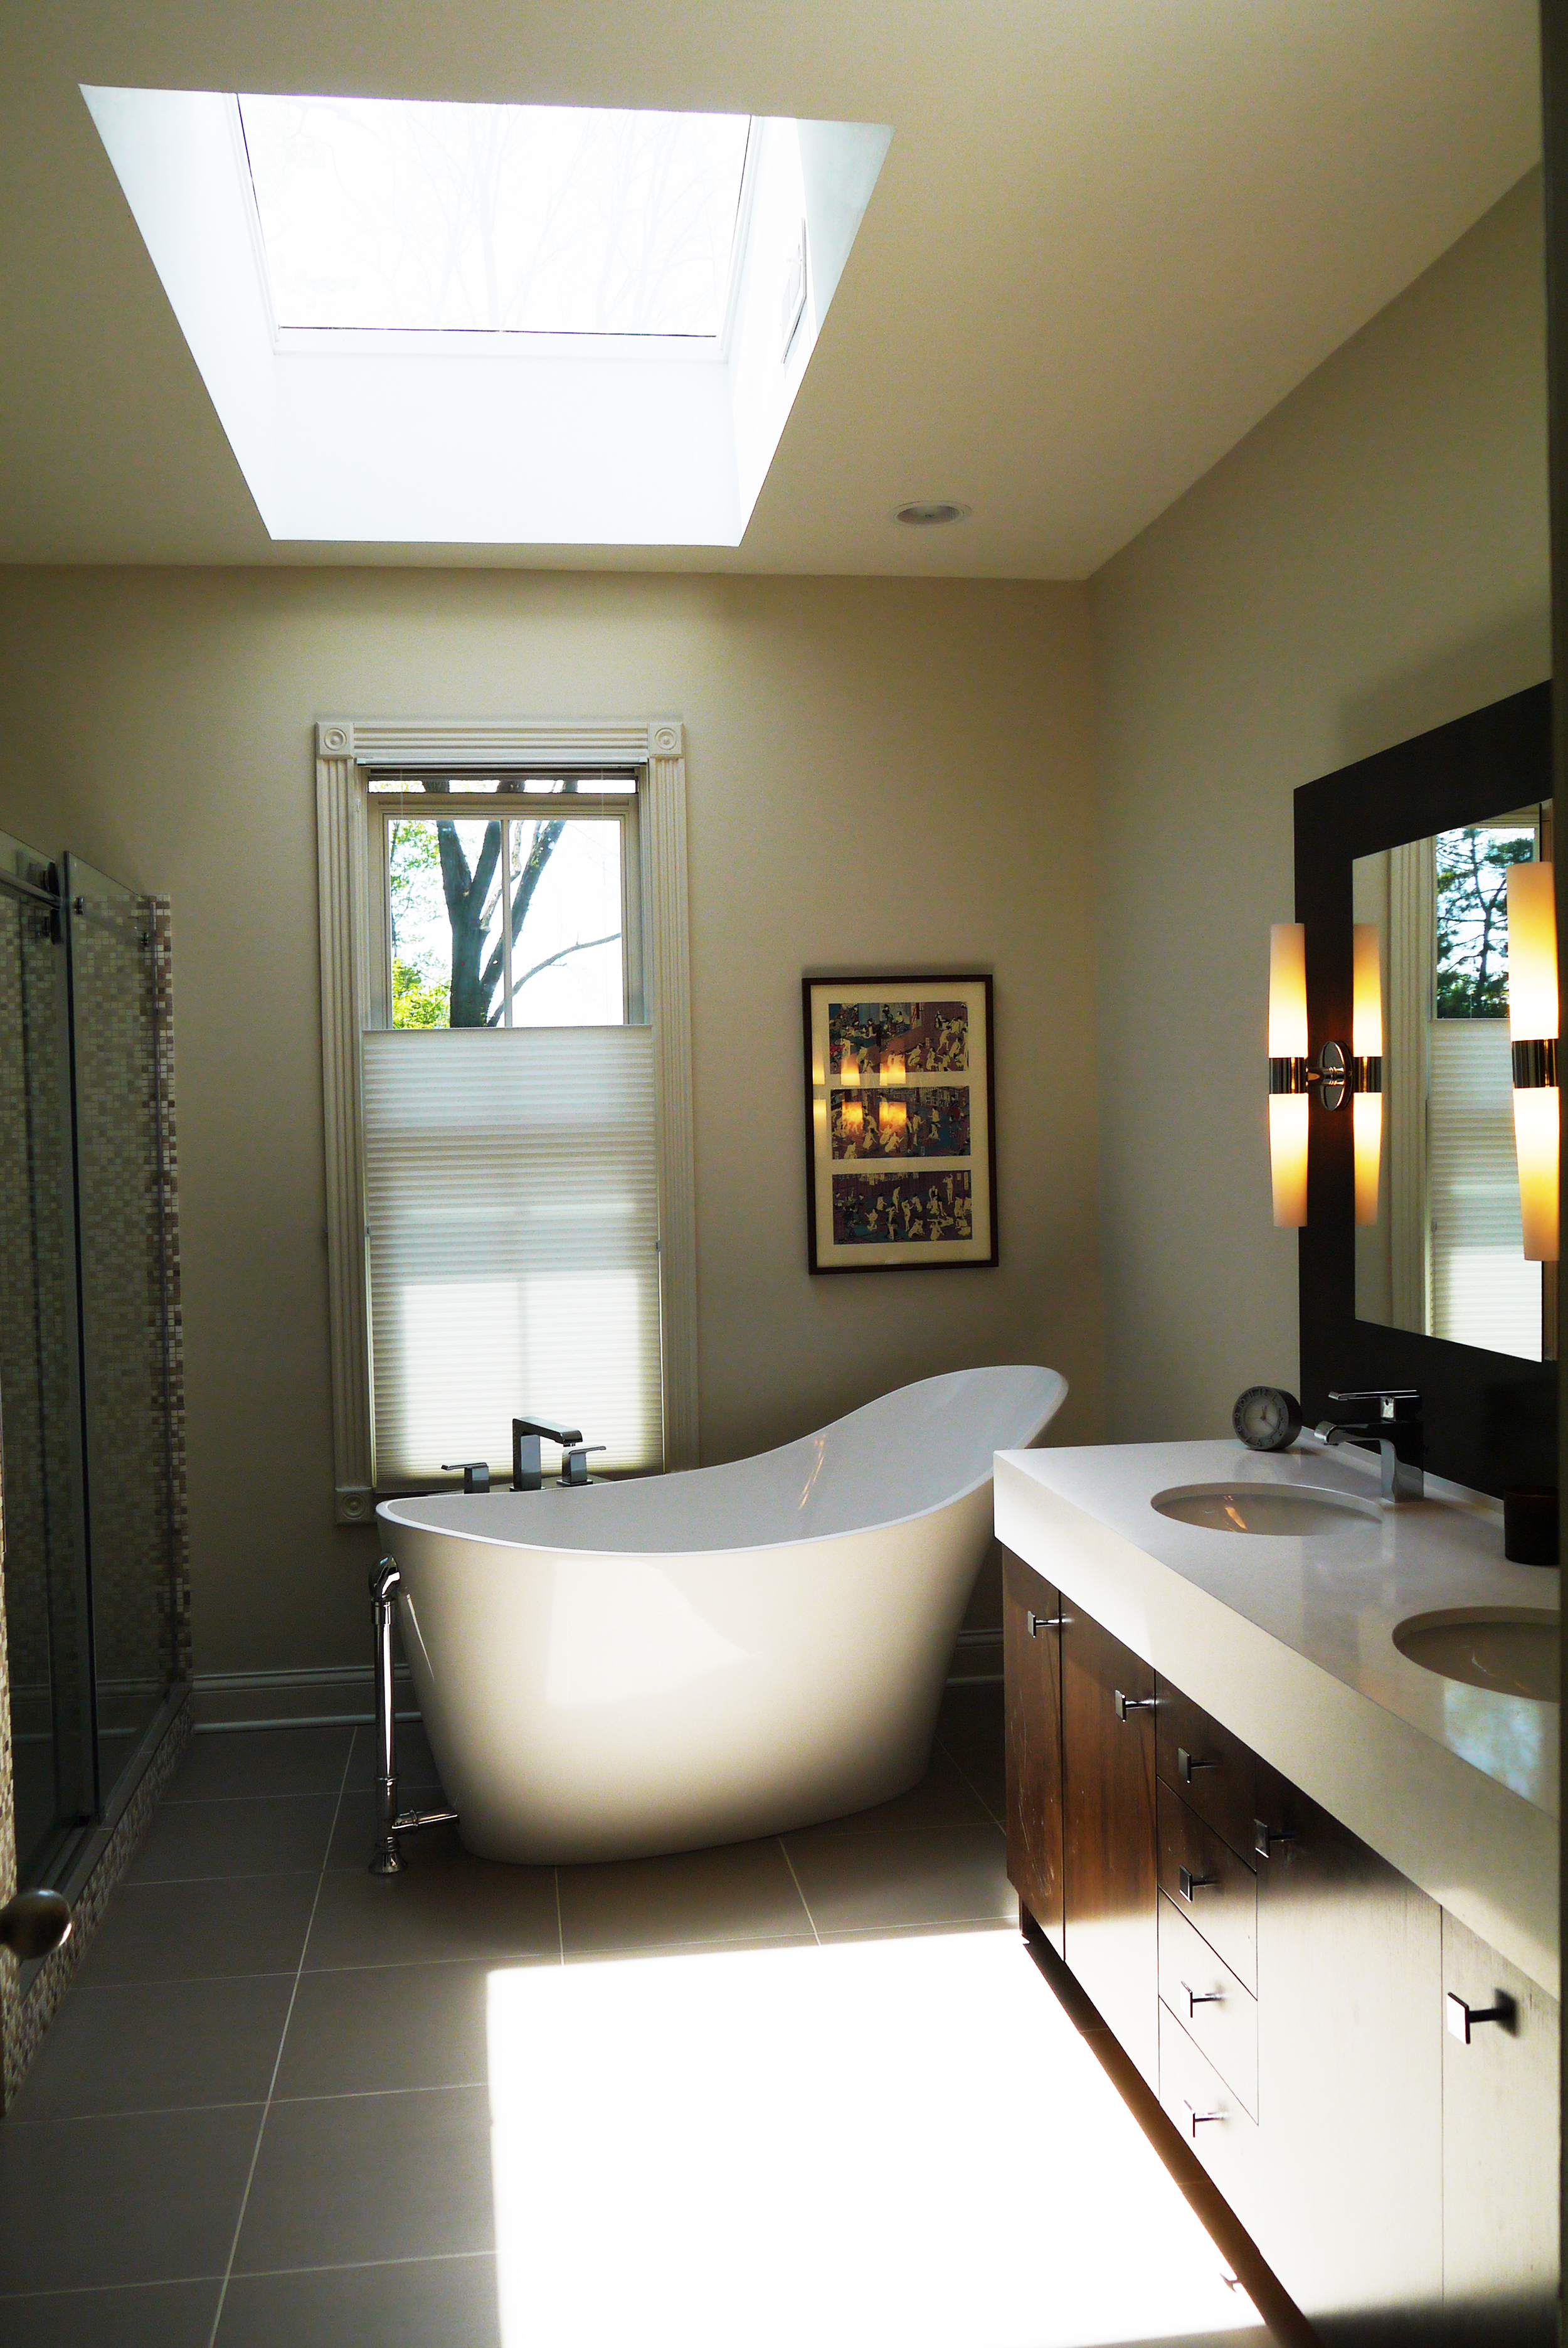 2 Point Perspective - Wilmette Residence Bath